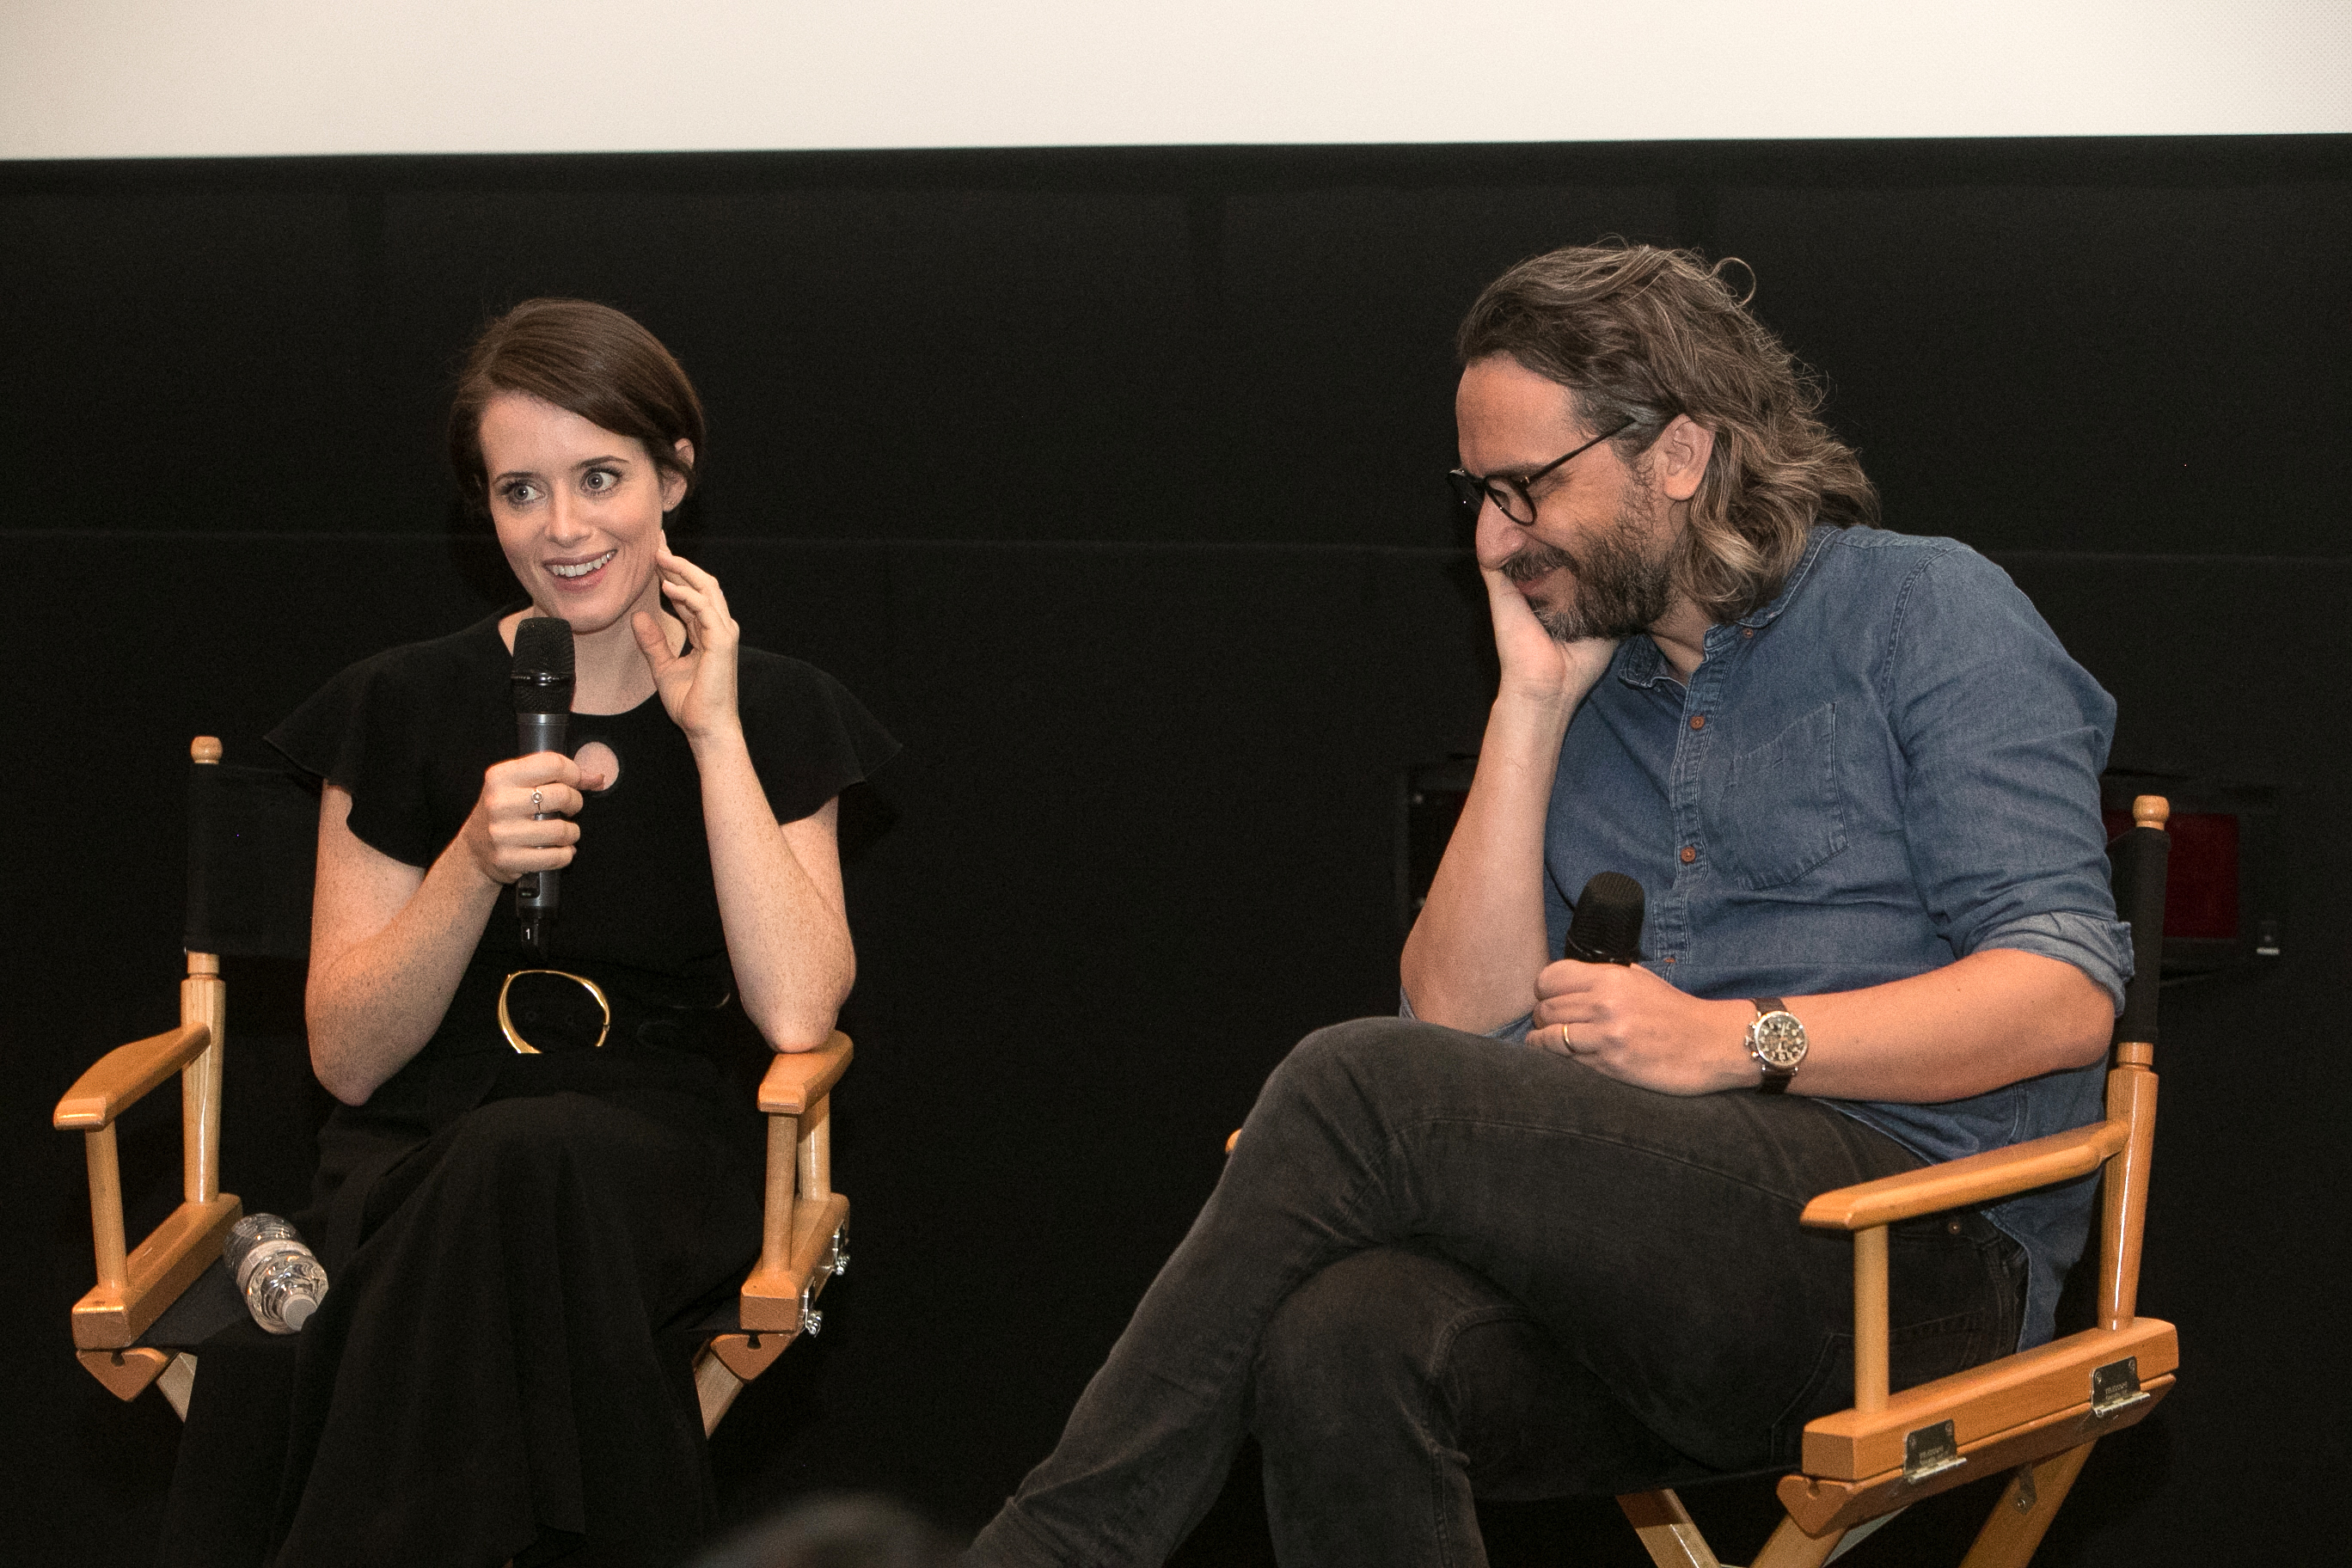 Fede Alvarez and Claire Foy Give Us a Preview of The Girl in the Spider's Web